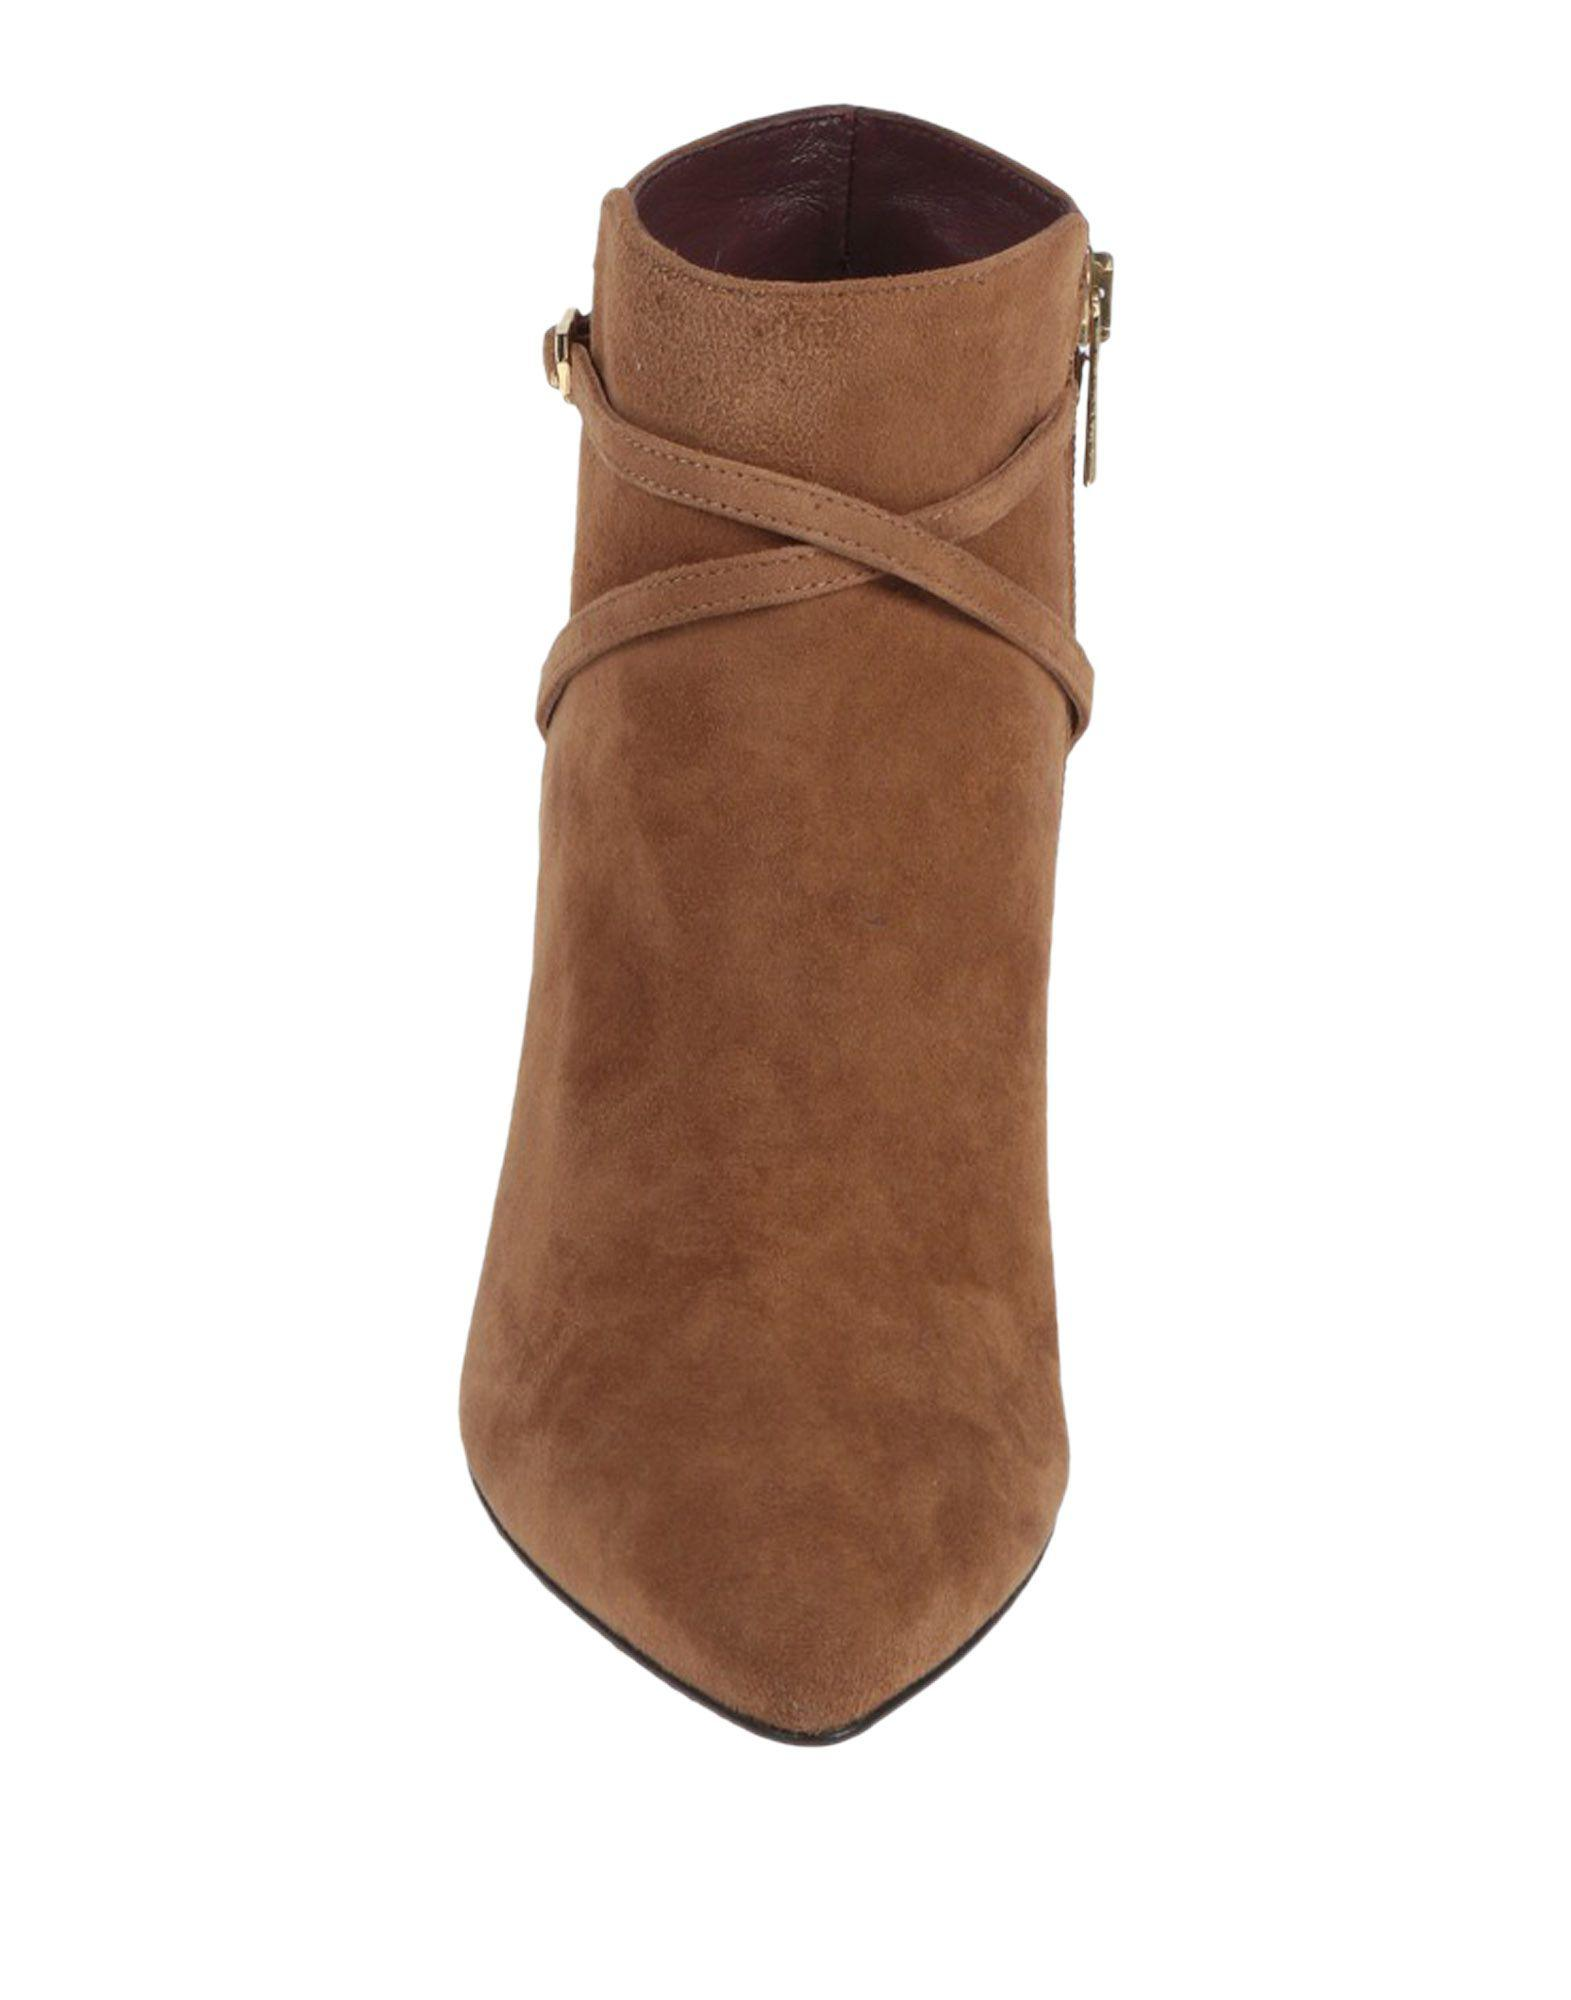 Avril Gau Ankle Boots in Camel (Brown)